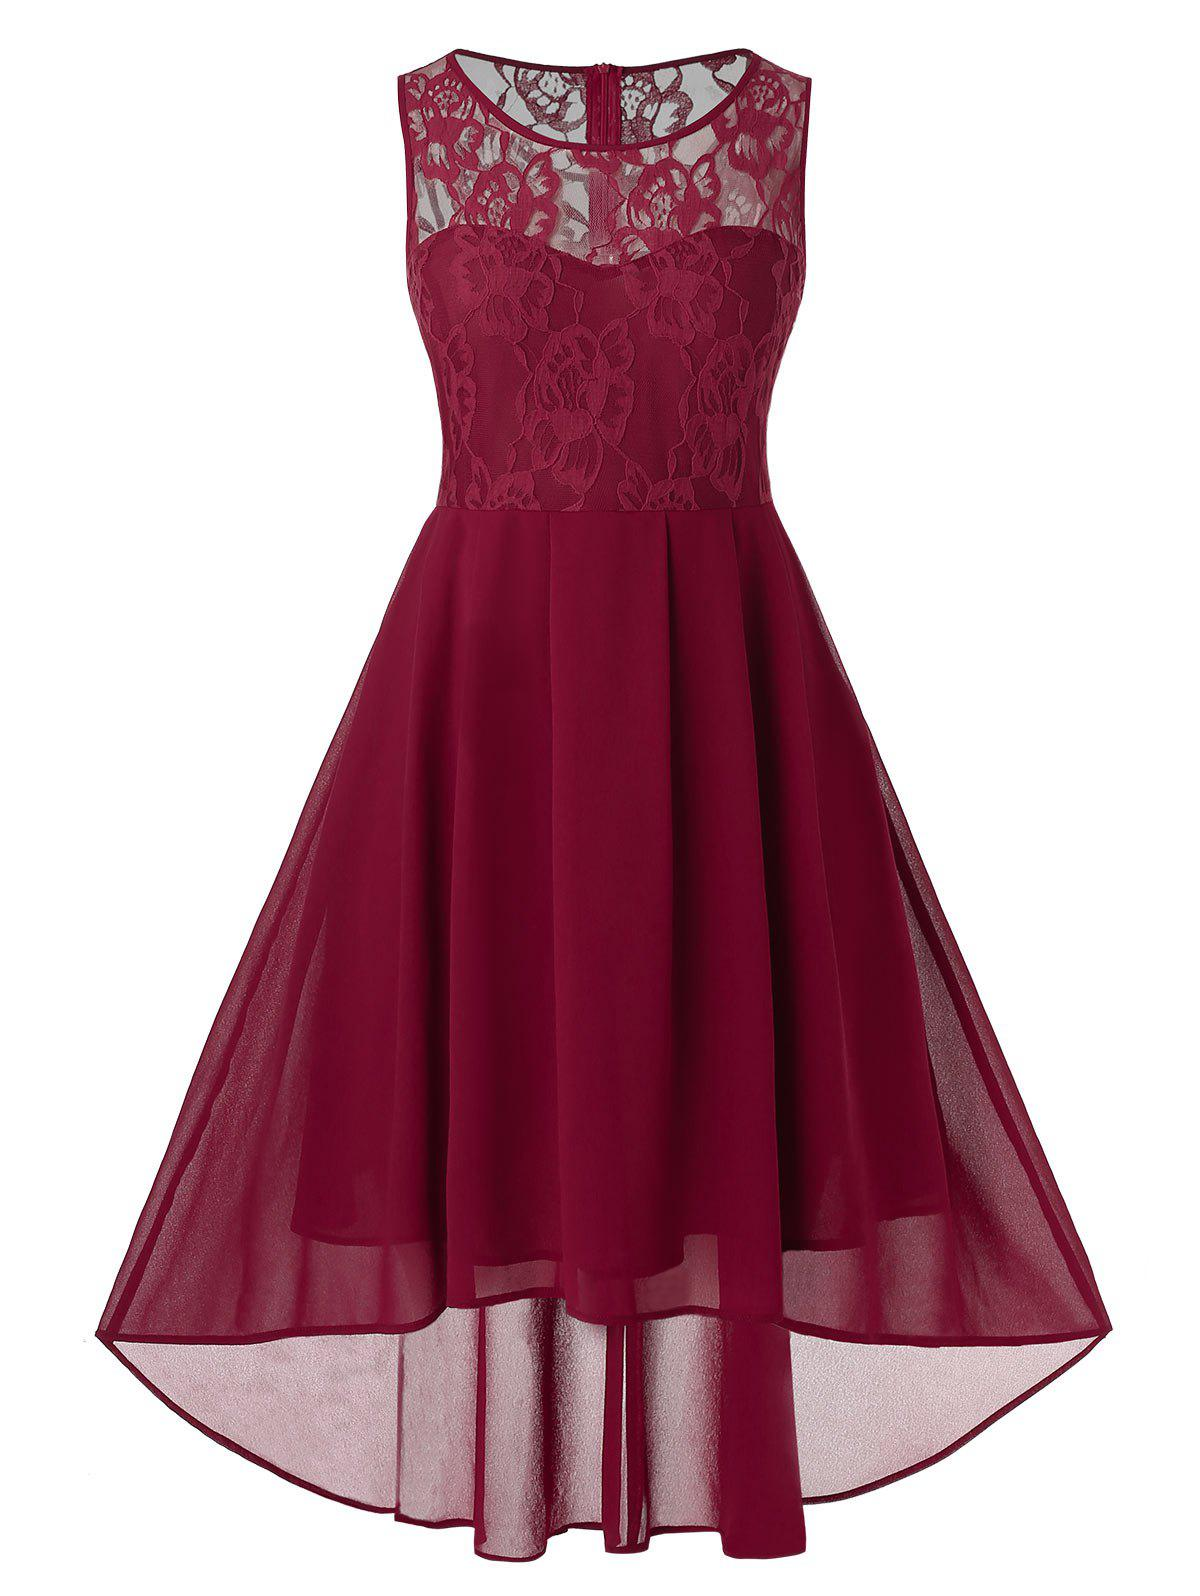 Plus Size Lace Insert High Low Fit and Flare Dress - RED WINE L